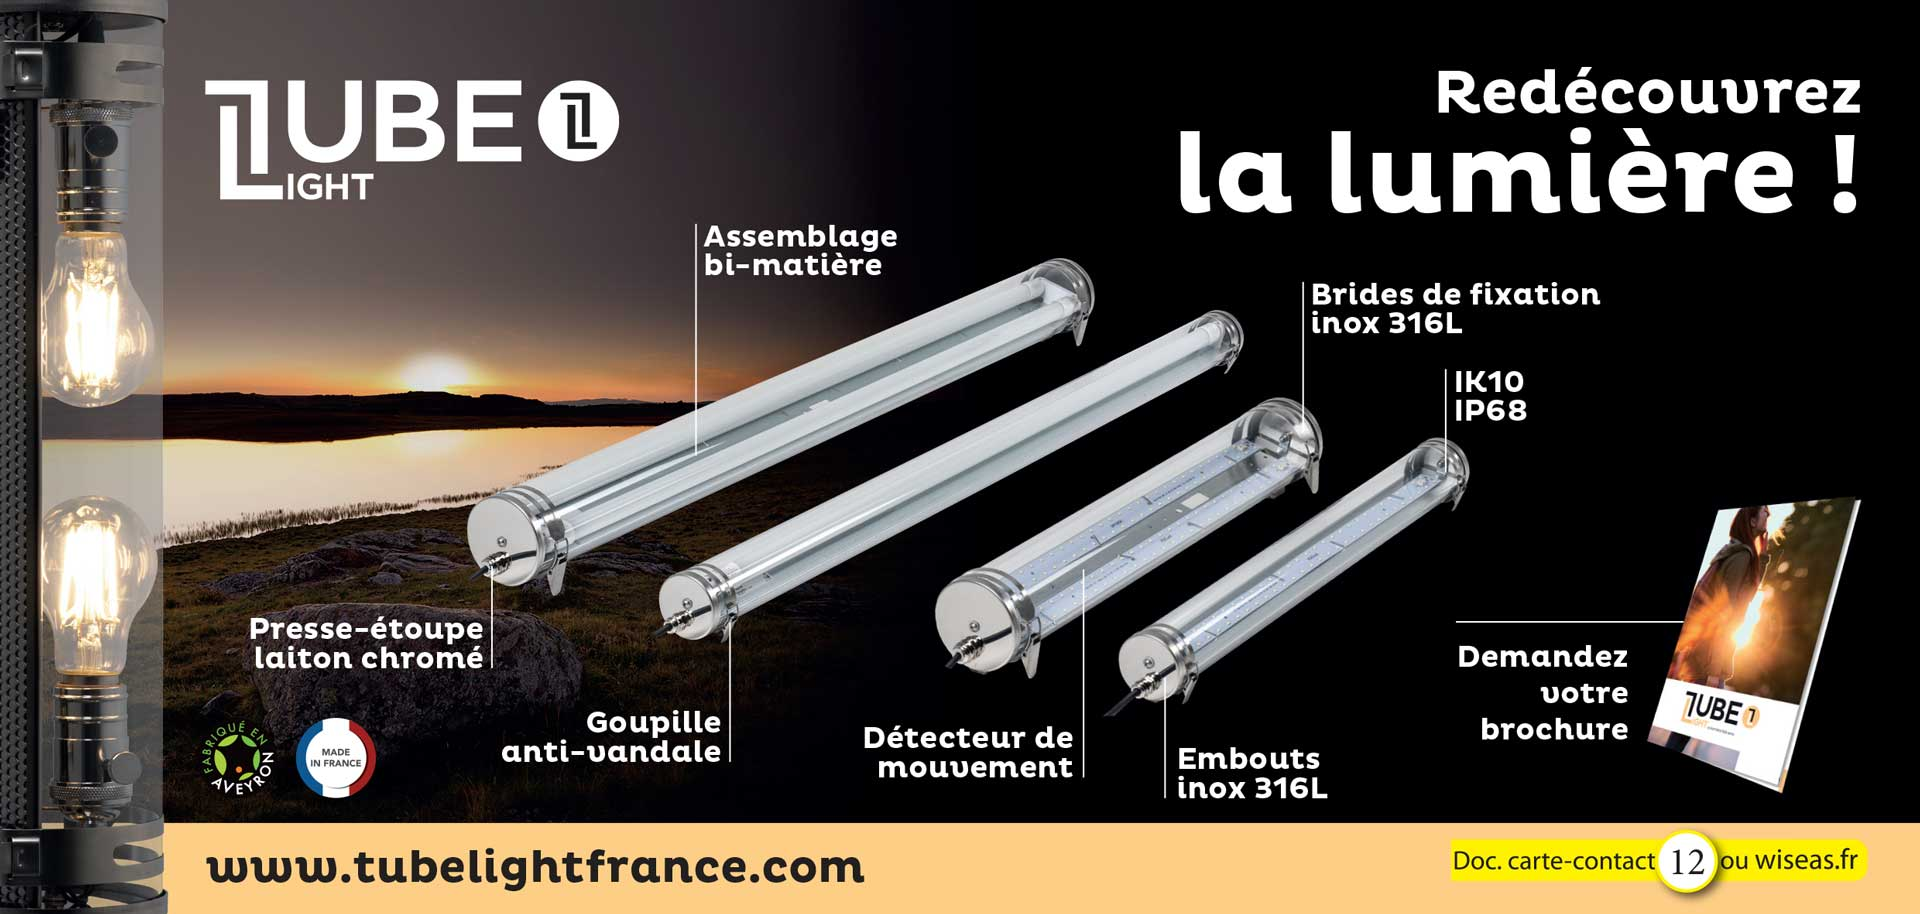 TUBELIGHT LED